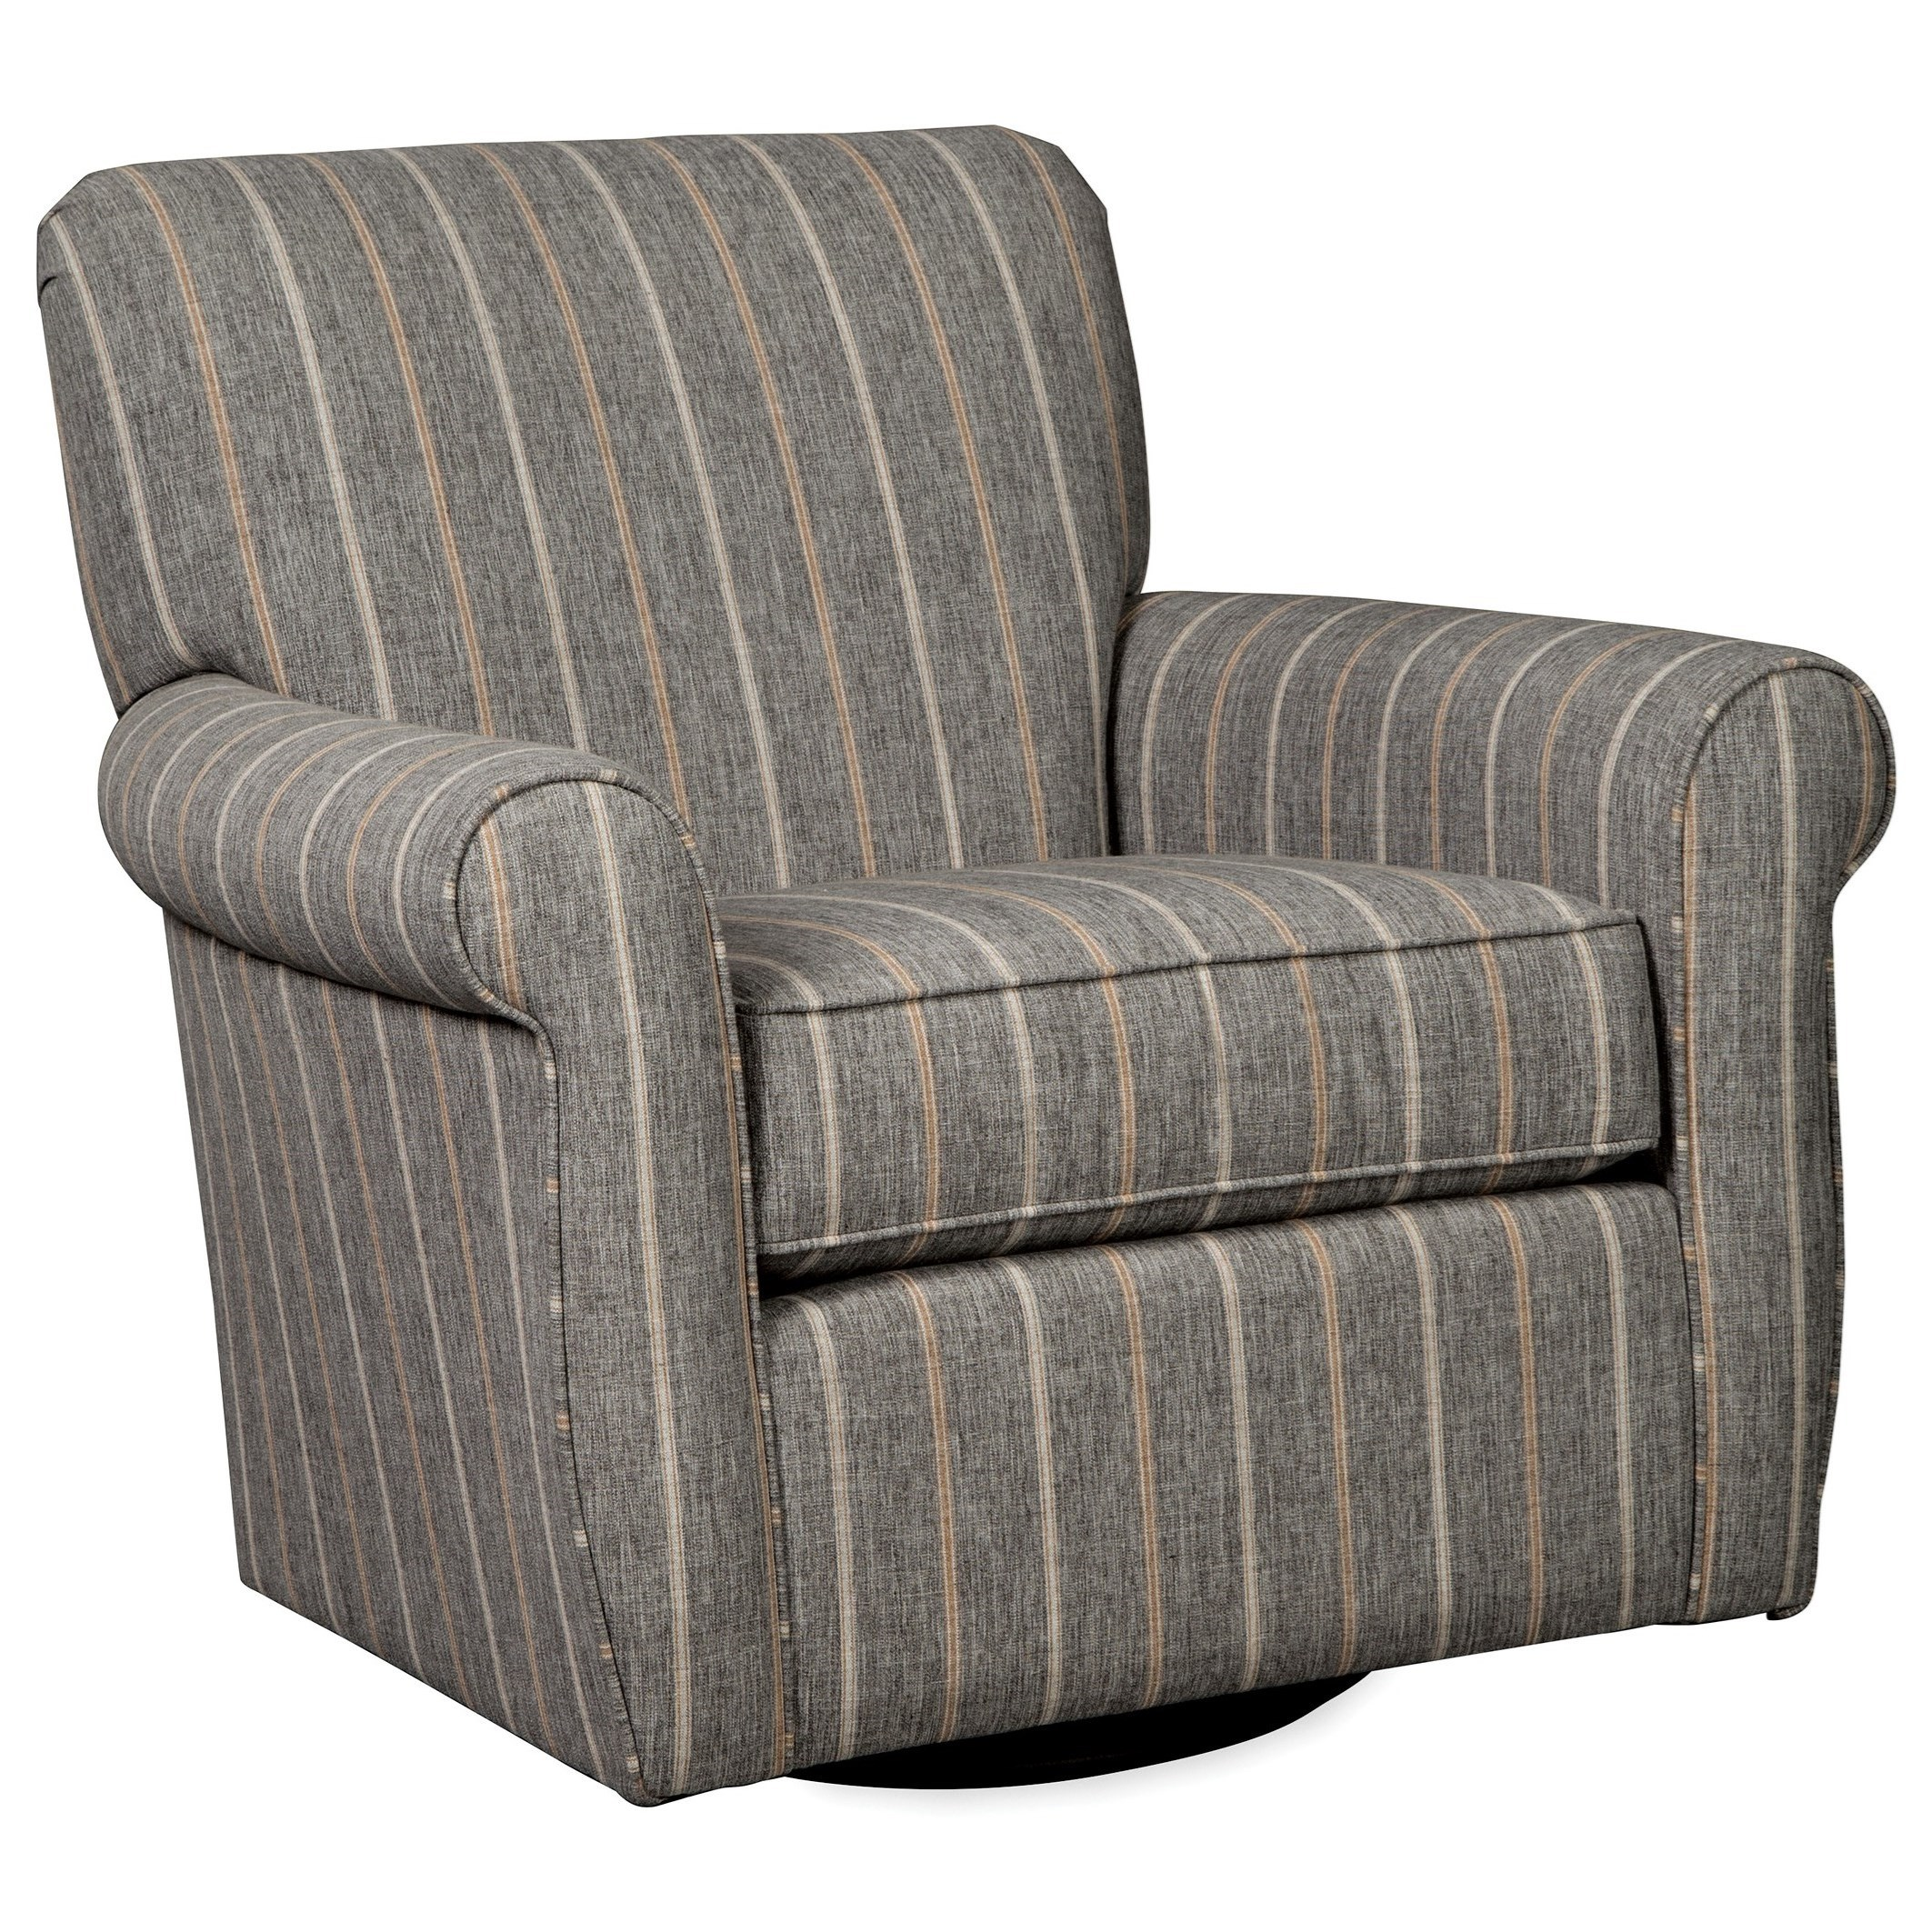 Craftmaster 075610-075710 Casual Swivel Glider Chair ...